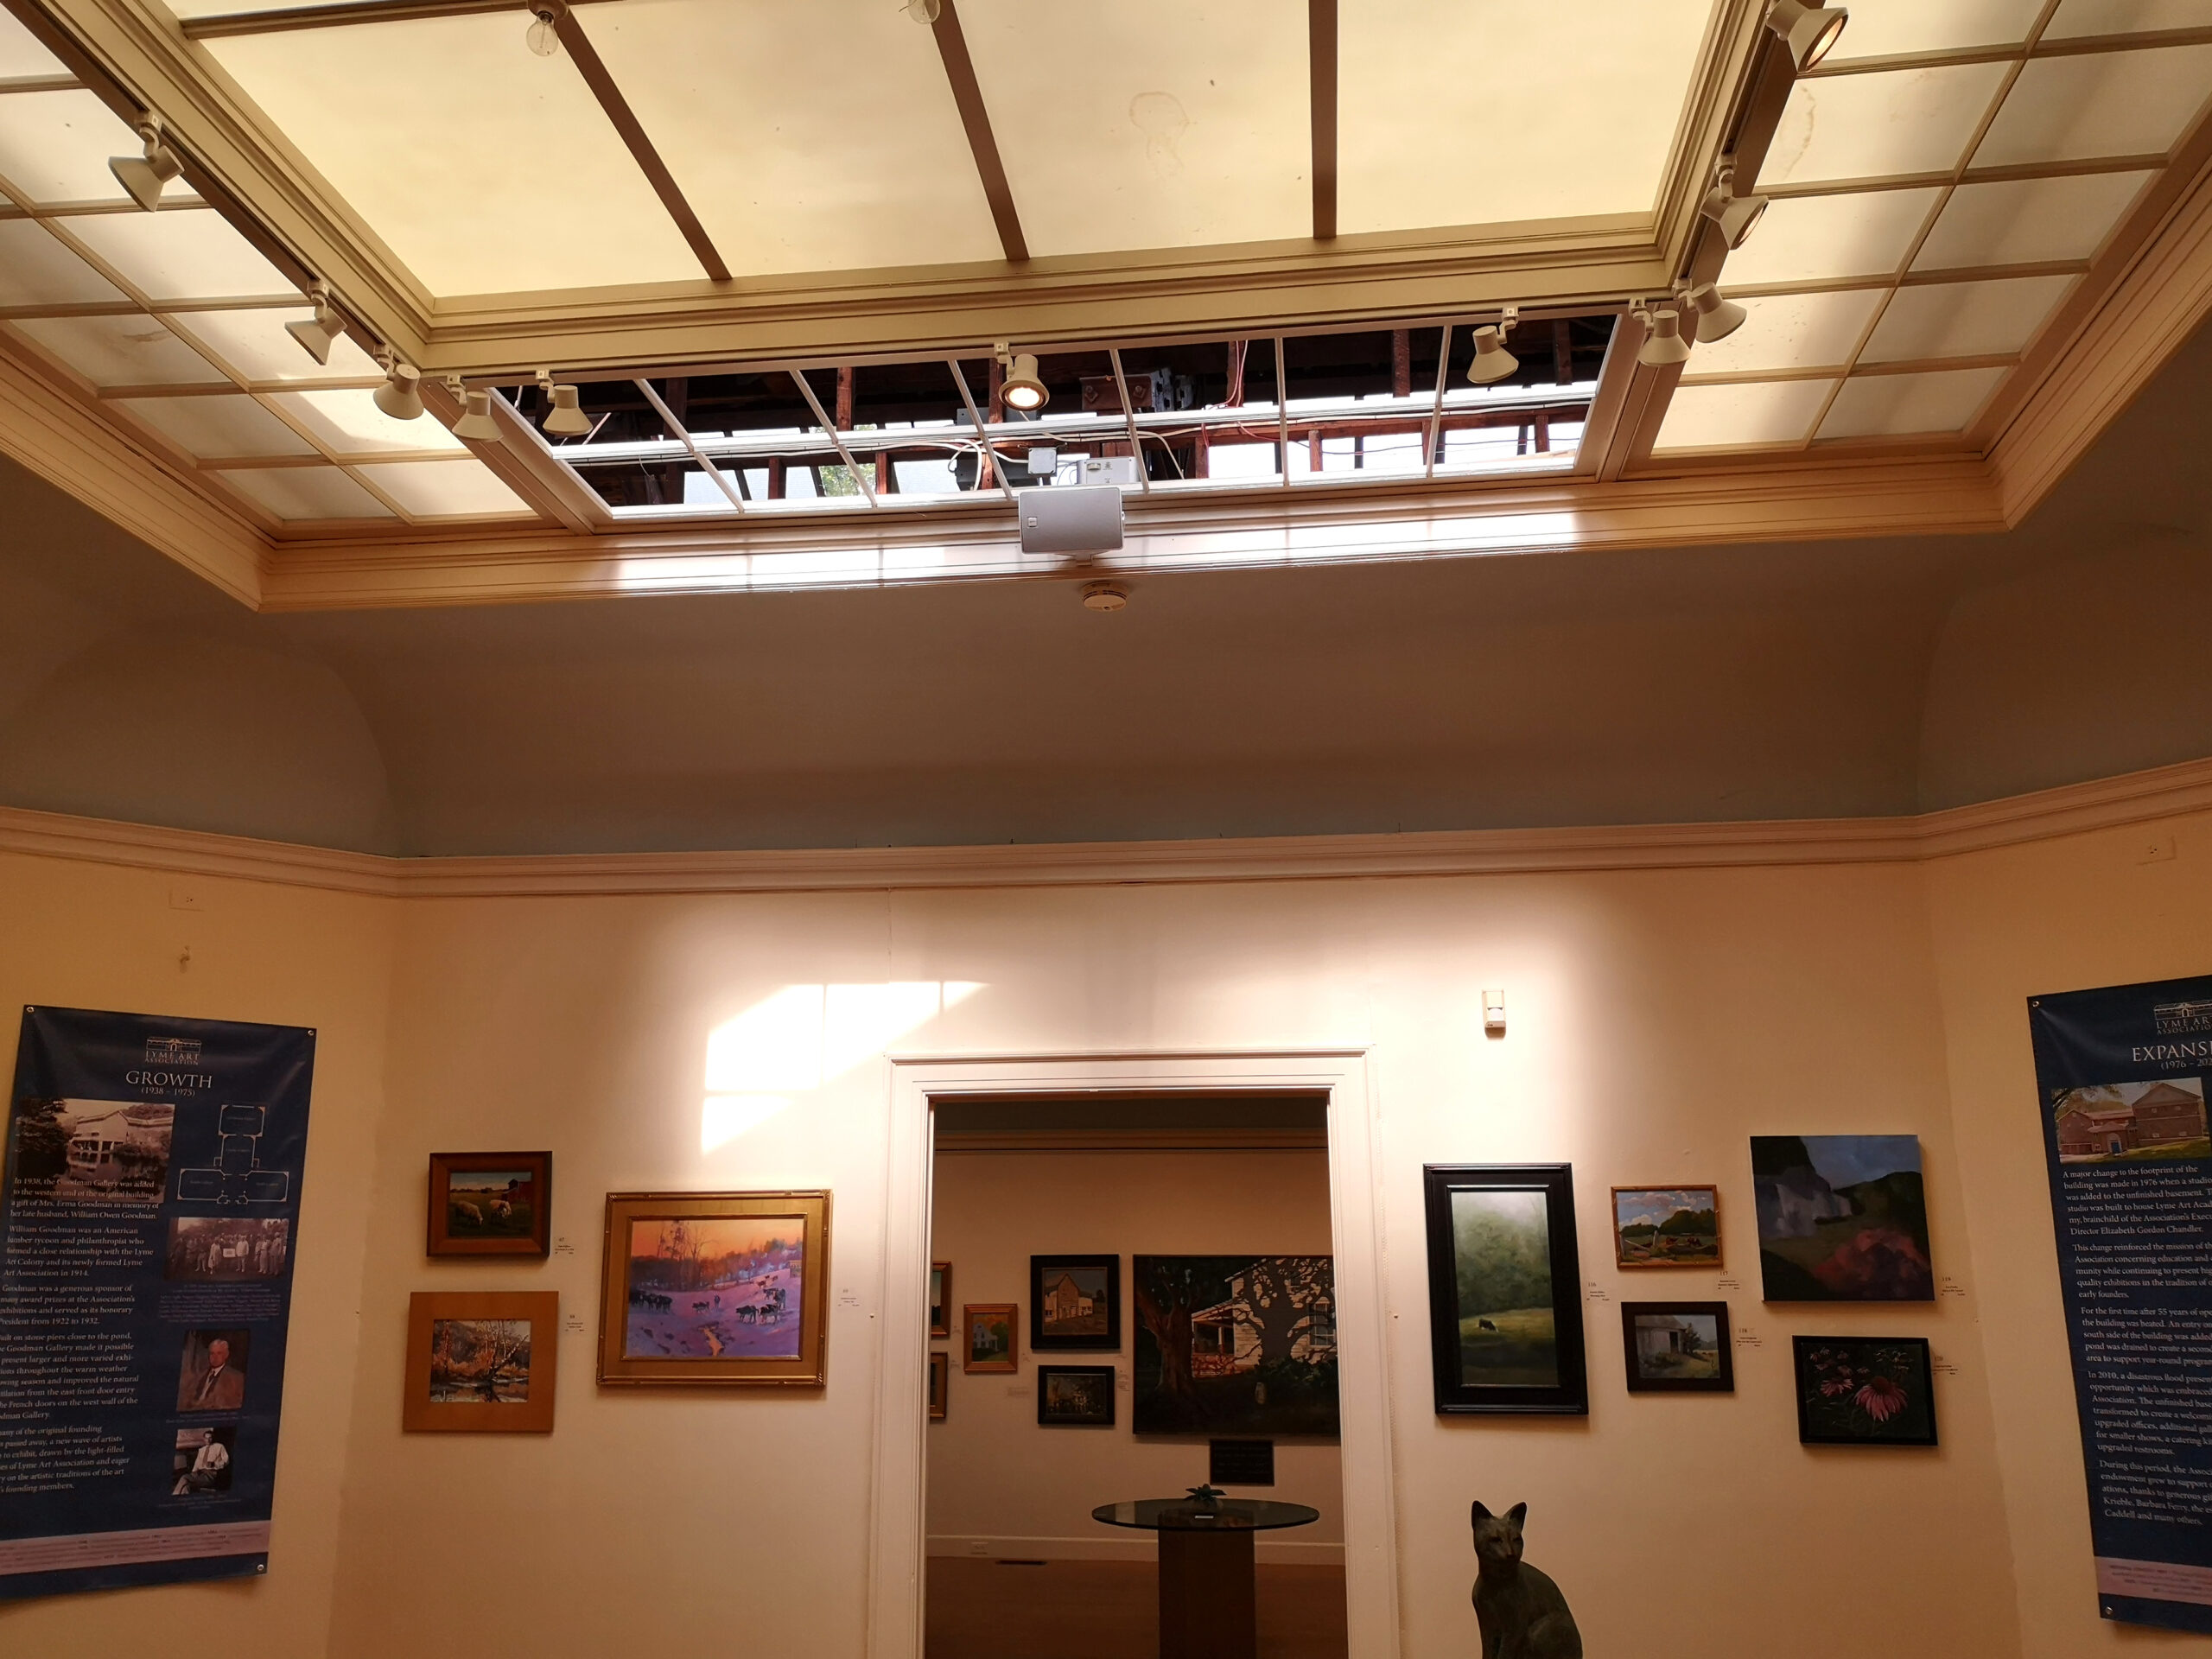 View of Skylights and Laylights